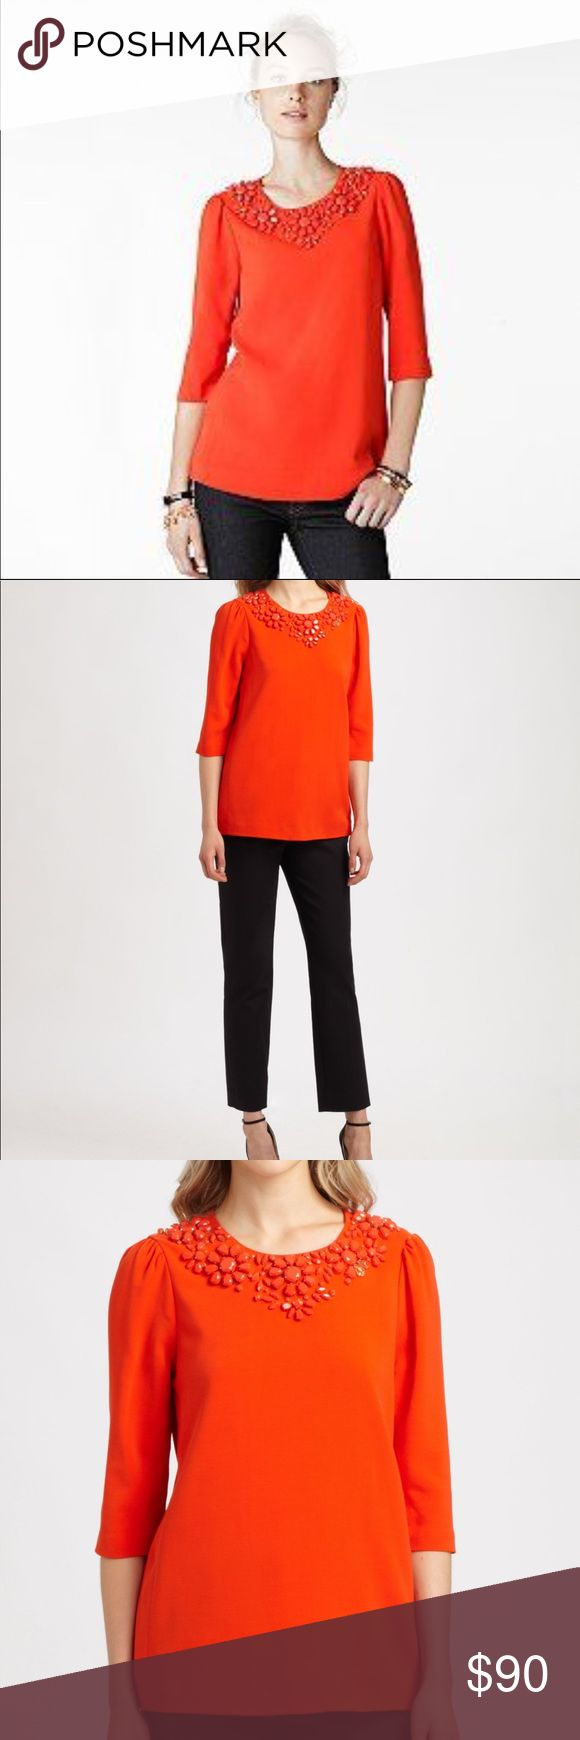 NWT Kate Spade Orange Stretch Embellished Blouse New with Tags Kate Spade Vanessa Top. Orange-Red with beautiful embellishment and gold zipper on back. This material is stretchy so you could size up (12) and still be okay. Material is spandex and lycra. kate spade Tops Blouses